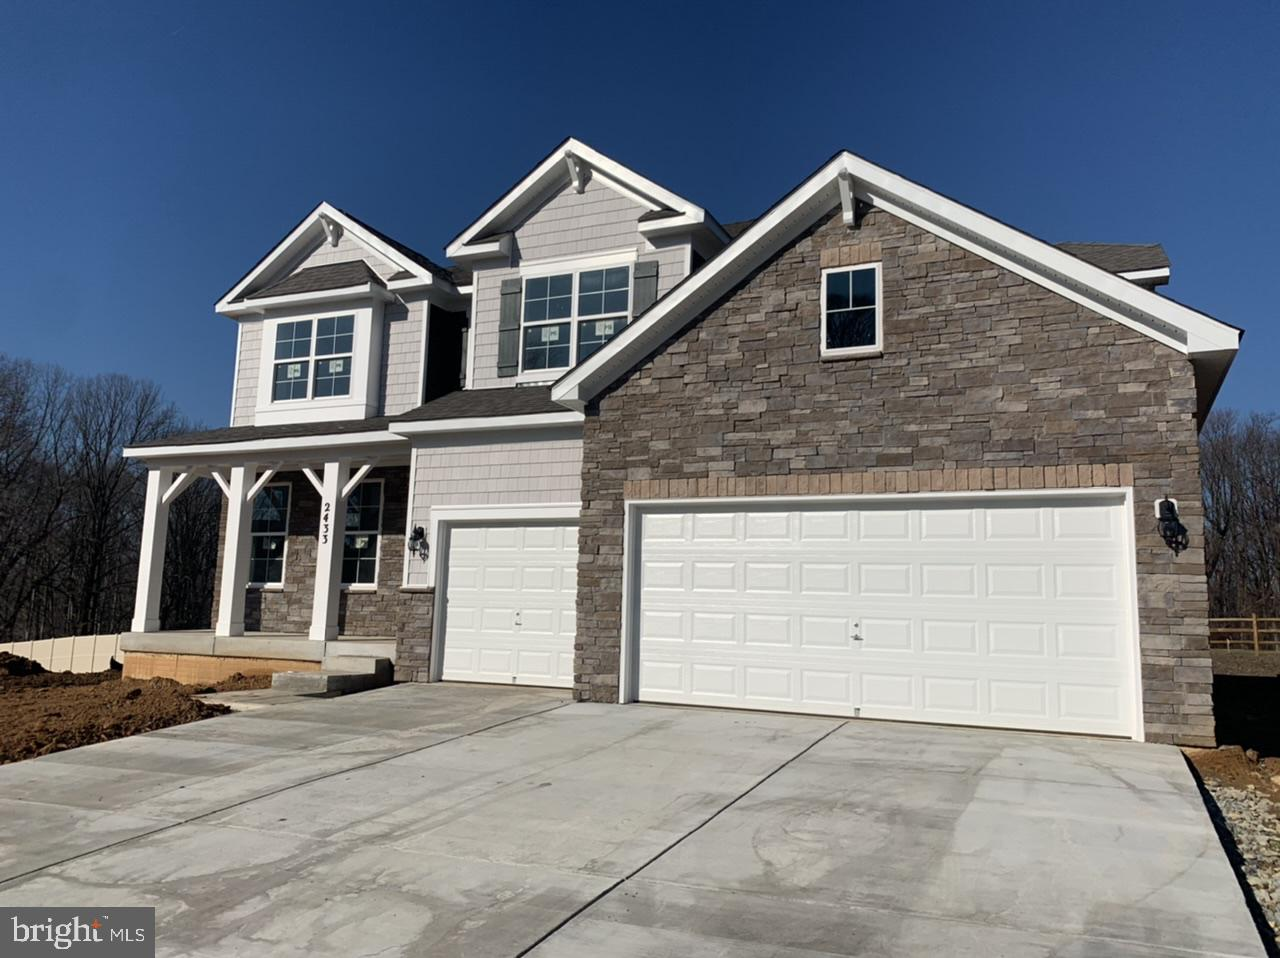 D. R. Horton at Monarch Glen, NOW selling with move in ready opportunities in the highly desirable P